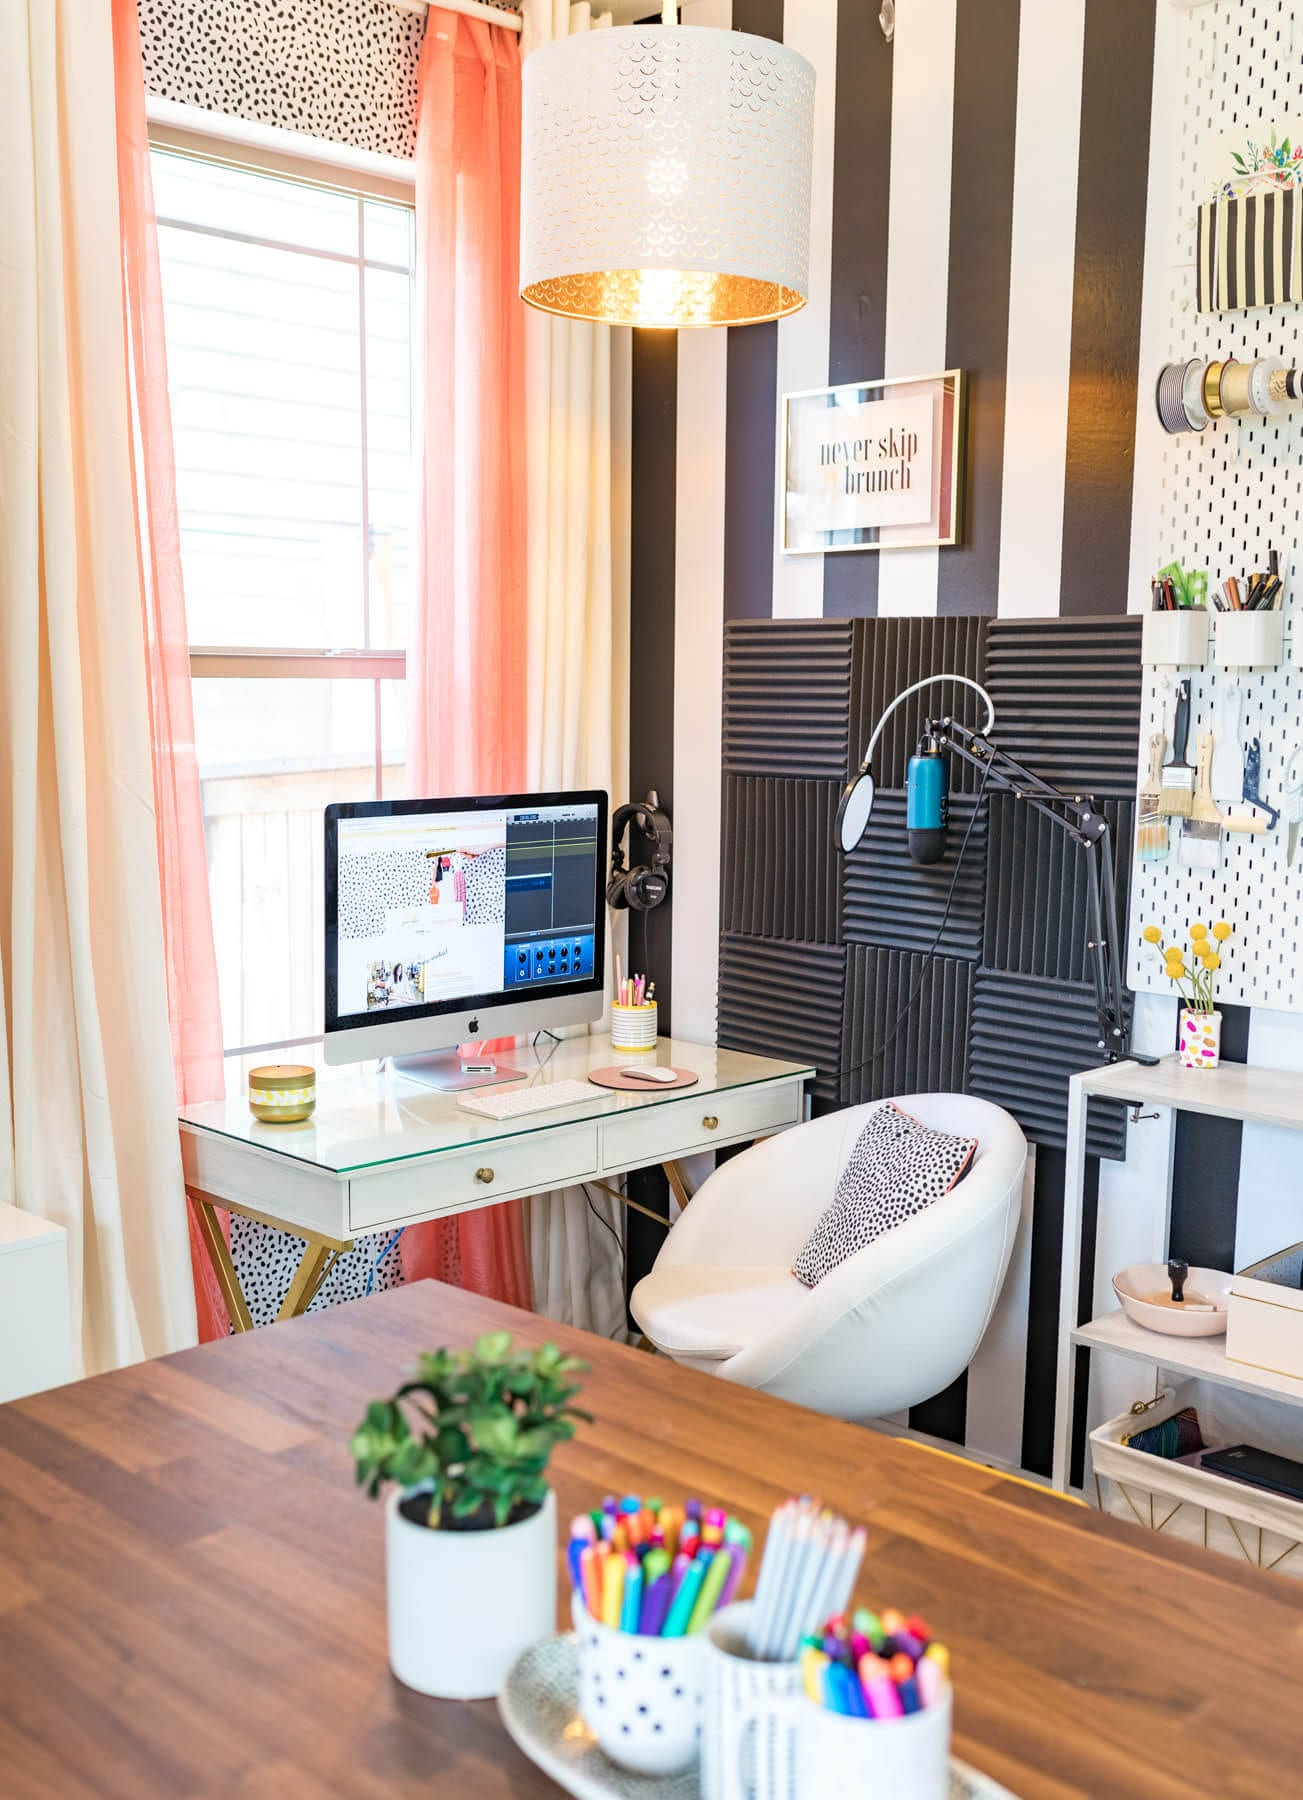 WHAT AN AMAZING SPACE! Office Reveal | Office Decor | office decorating ideas | Studio Design | office decorating ideas for women | Never Skip Brunch by Cara Newhart #home #decor #office #studio